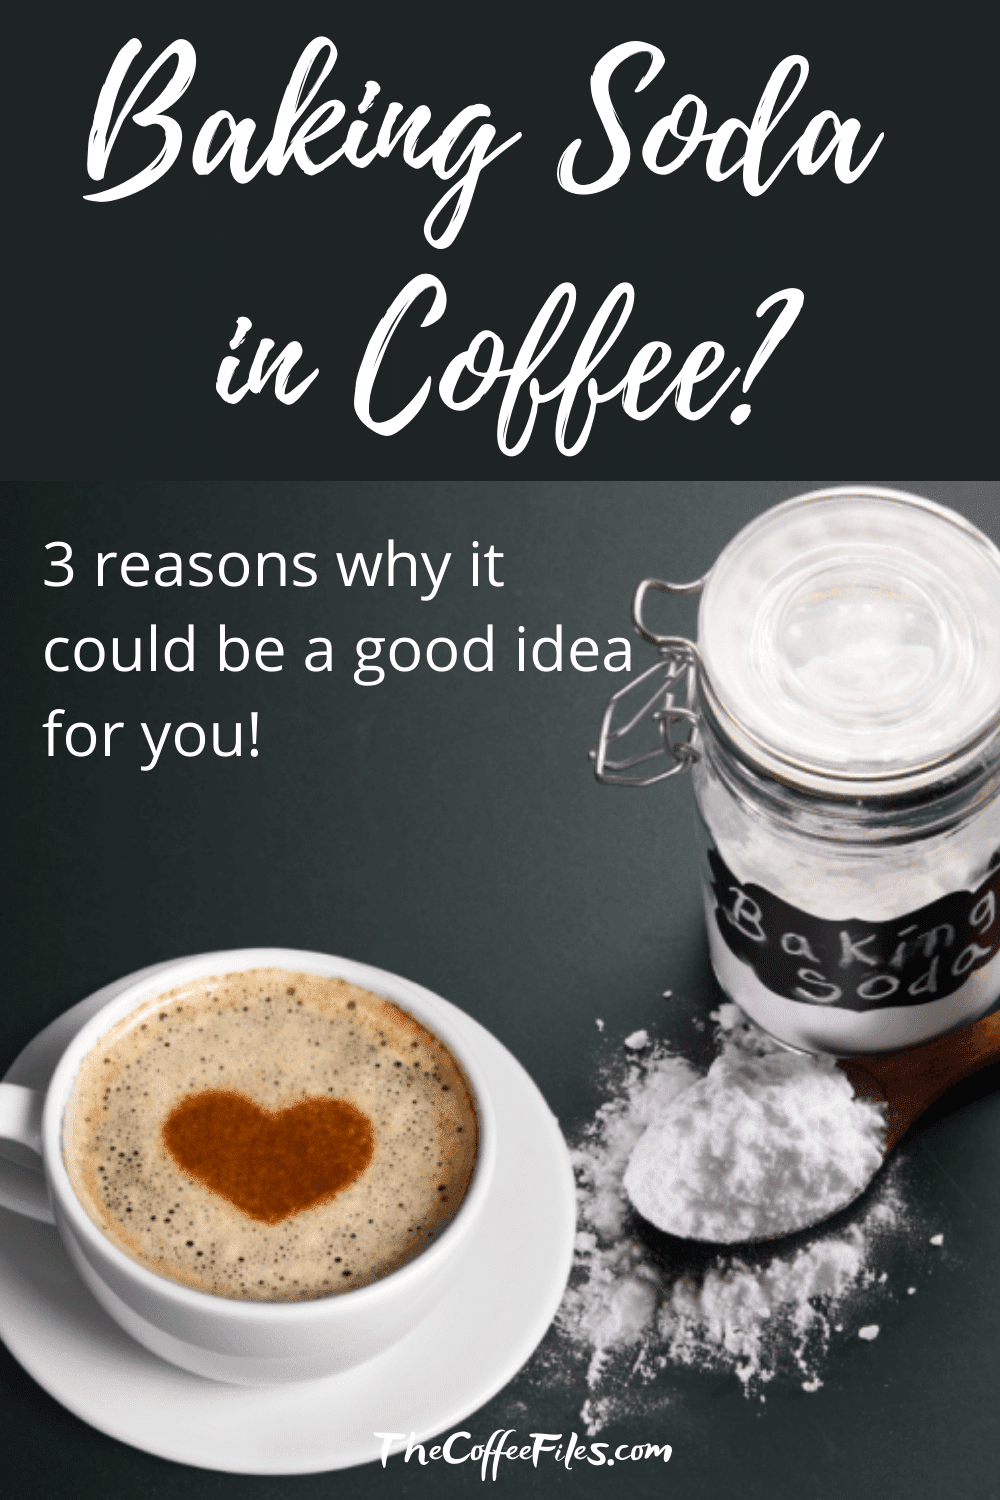 baking soda in coffee - 3 reasons why it might be good for you to do